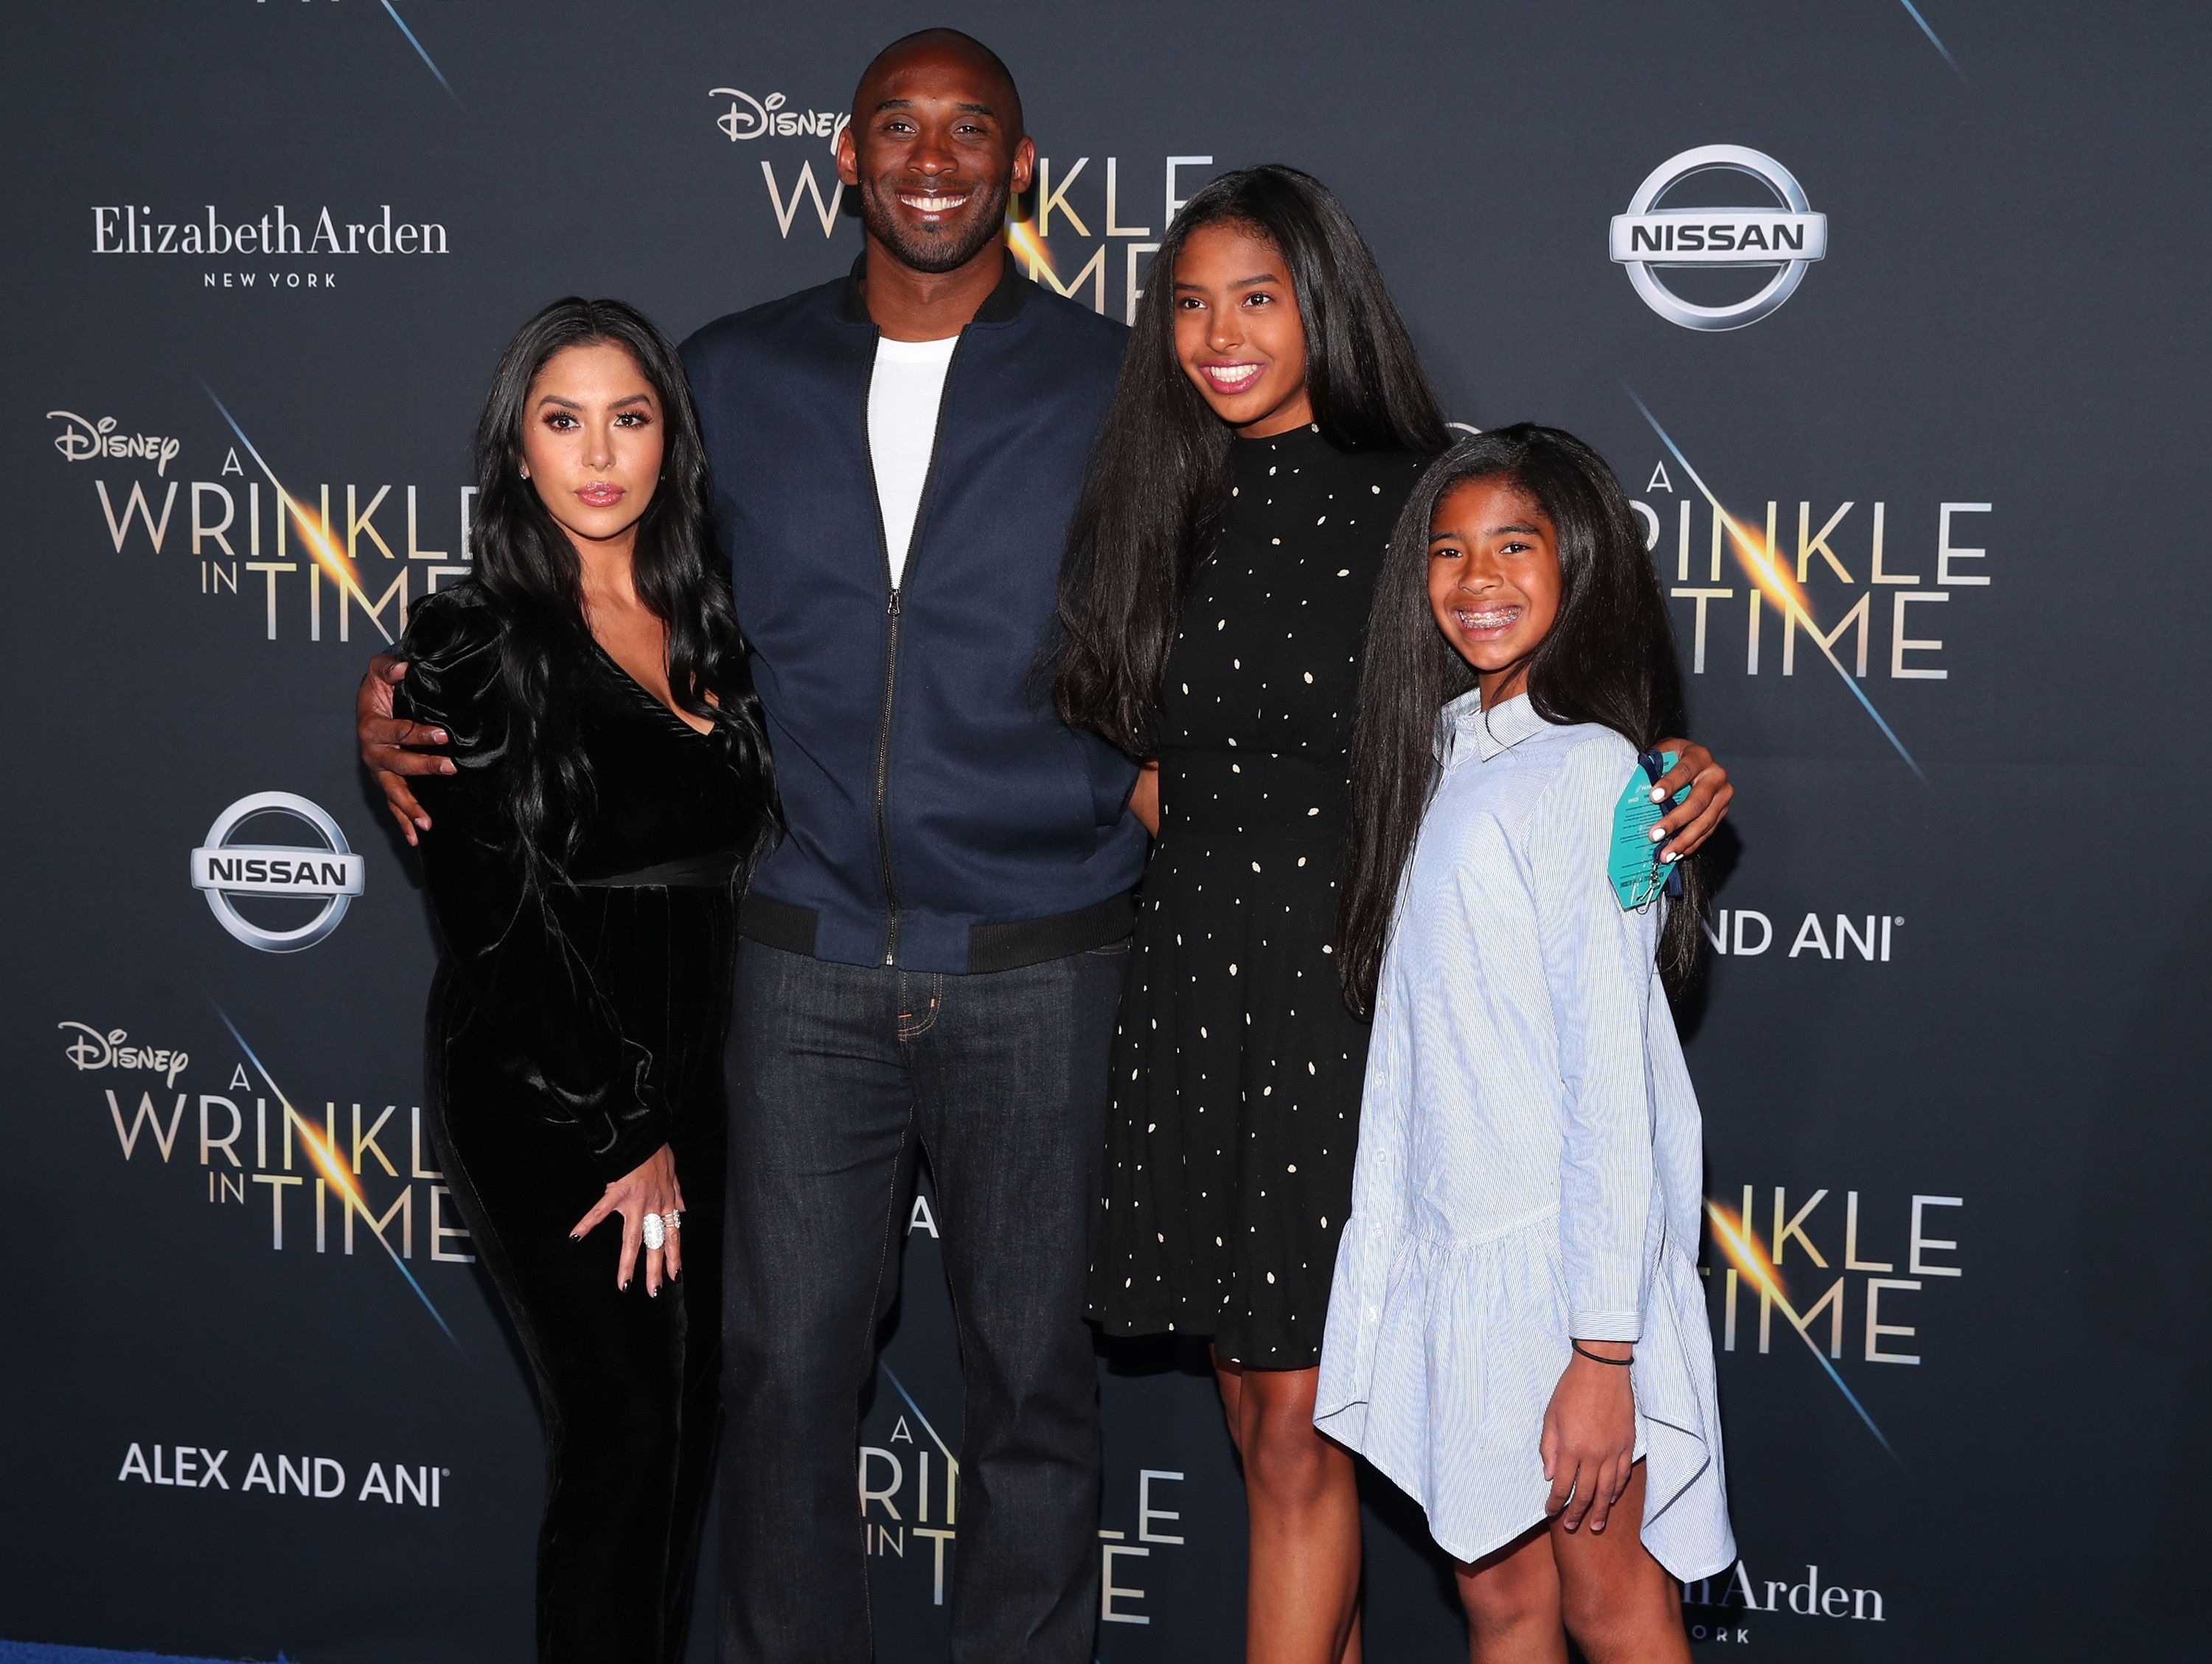 """Vanessa and Kobe Bryant and their two oldest daughters, Natalia and Gianna at the premiere of """"A Wrinkle in Time"""" in February 2018, in Los Angeles, California 